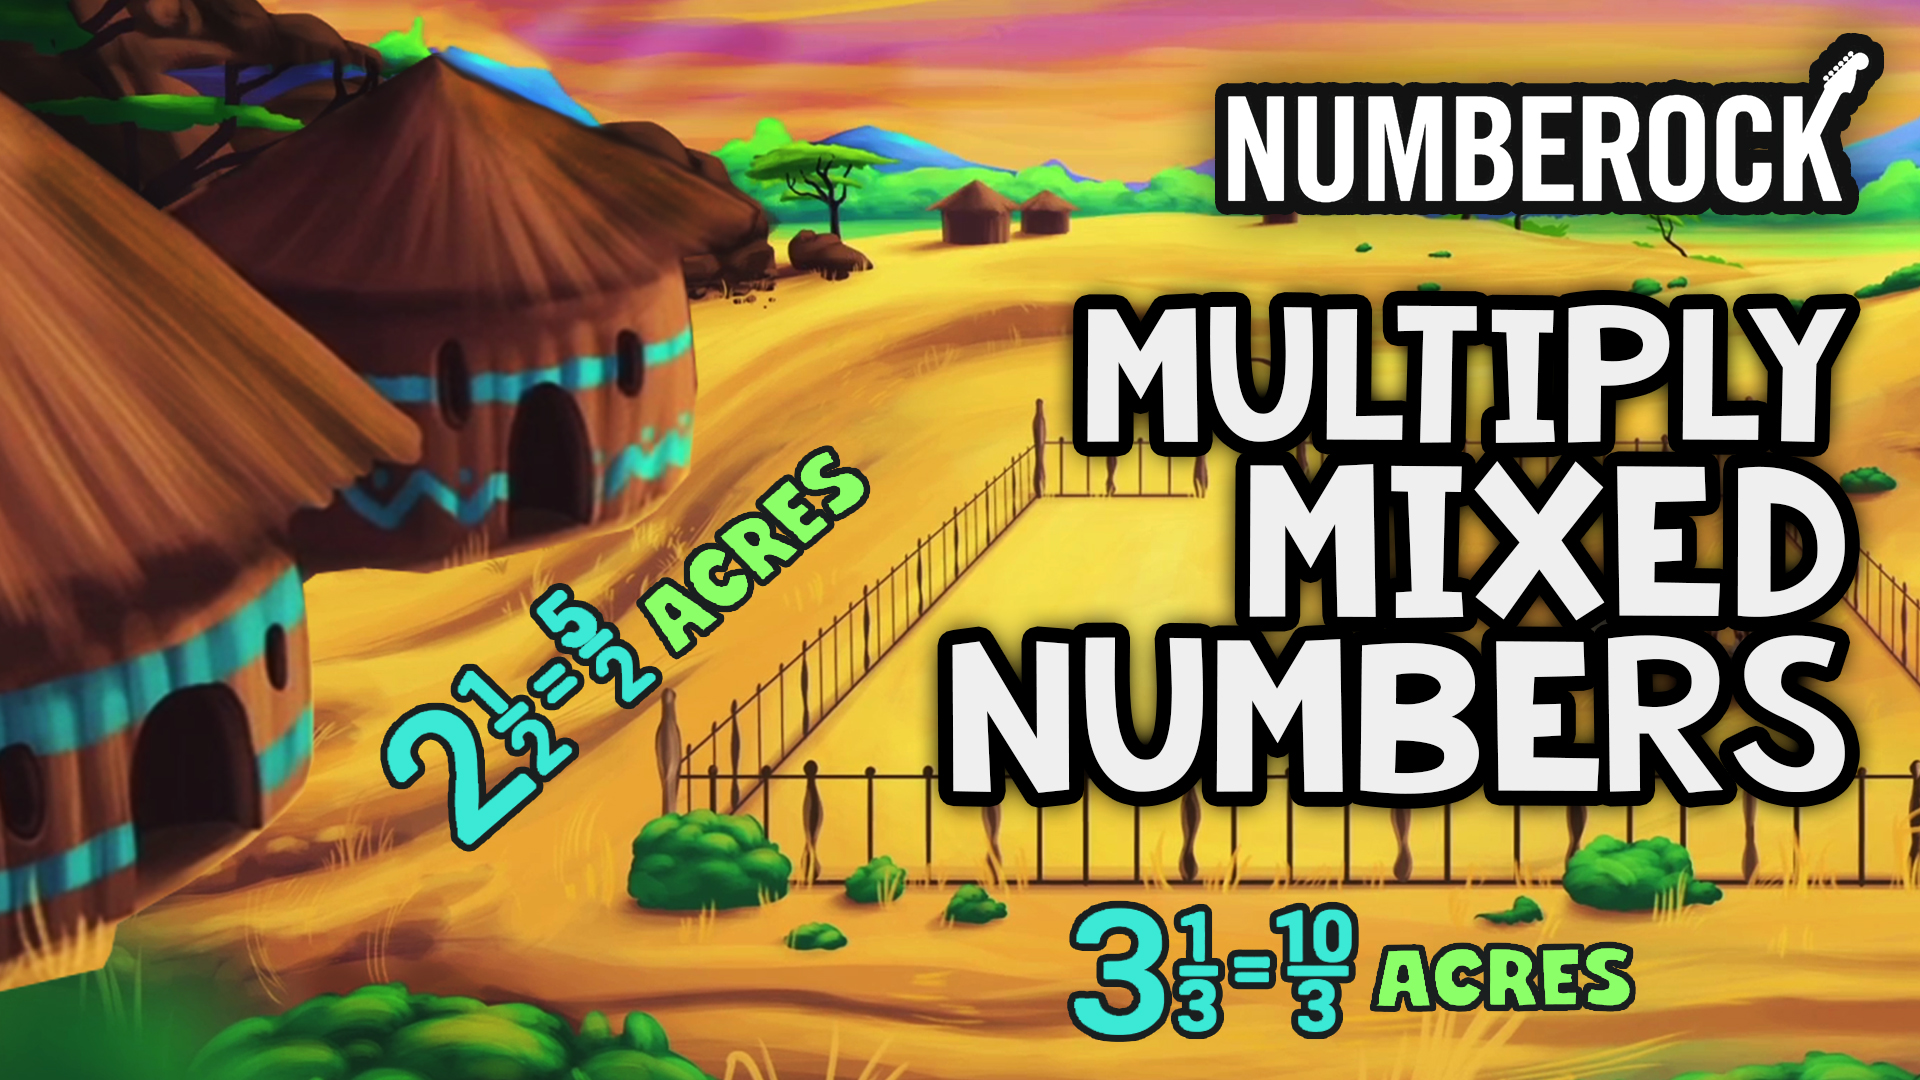 Multiplying Mixed Numbers Song by NUMBEROCK | 5th Grade Math Video with Worksheets and Activities